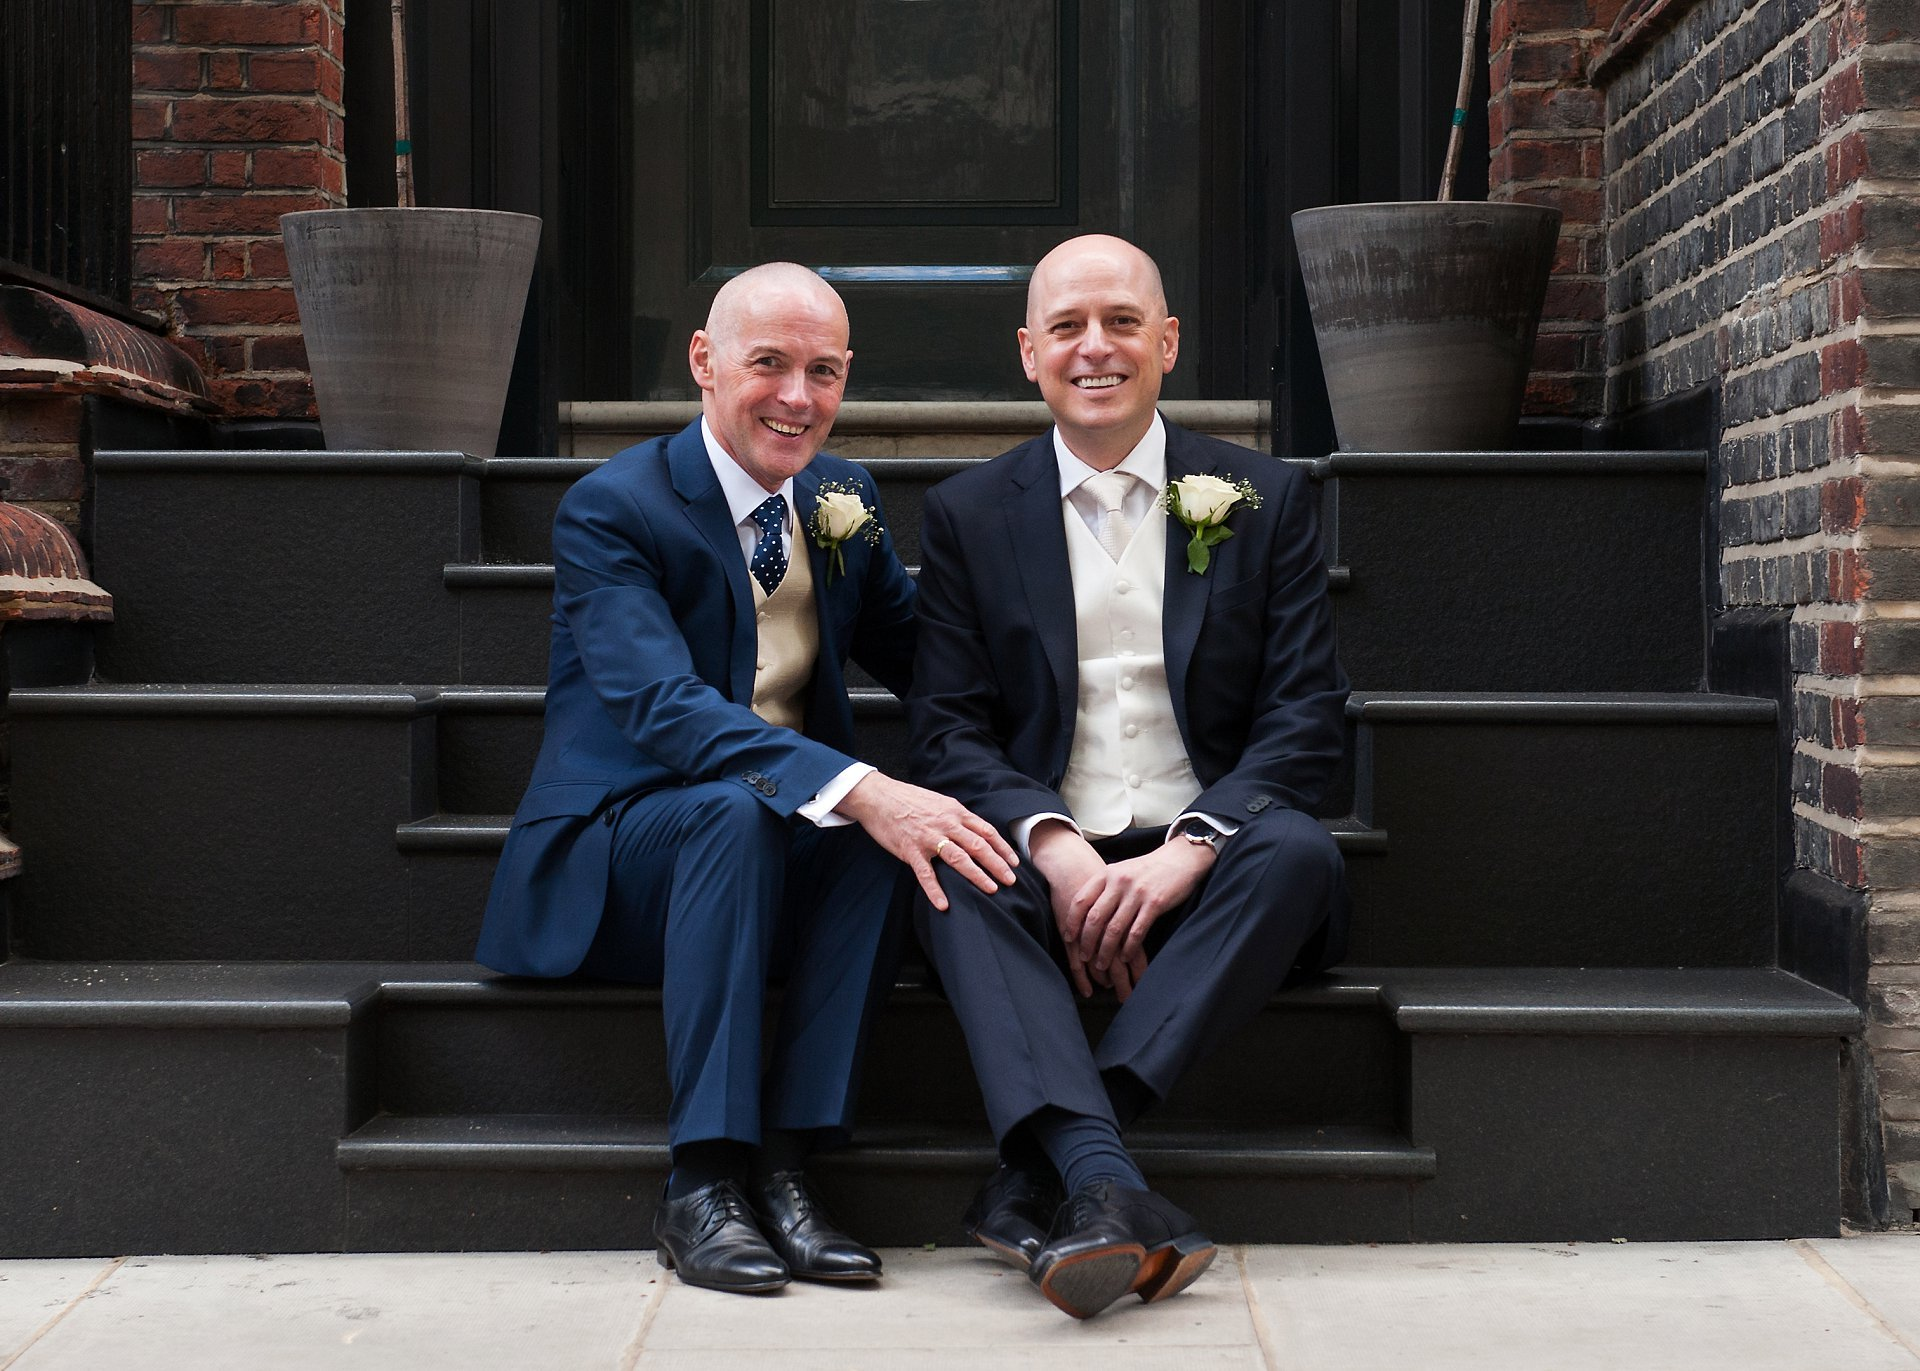 The two grooms relax on a Chelsea step